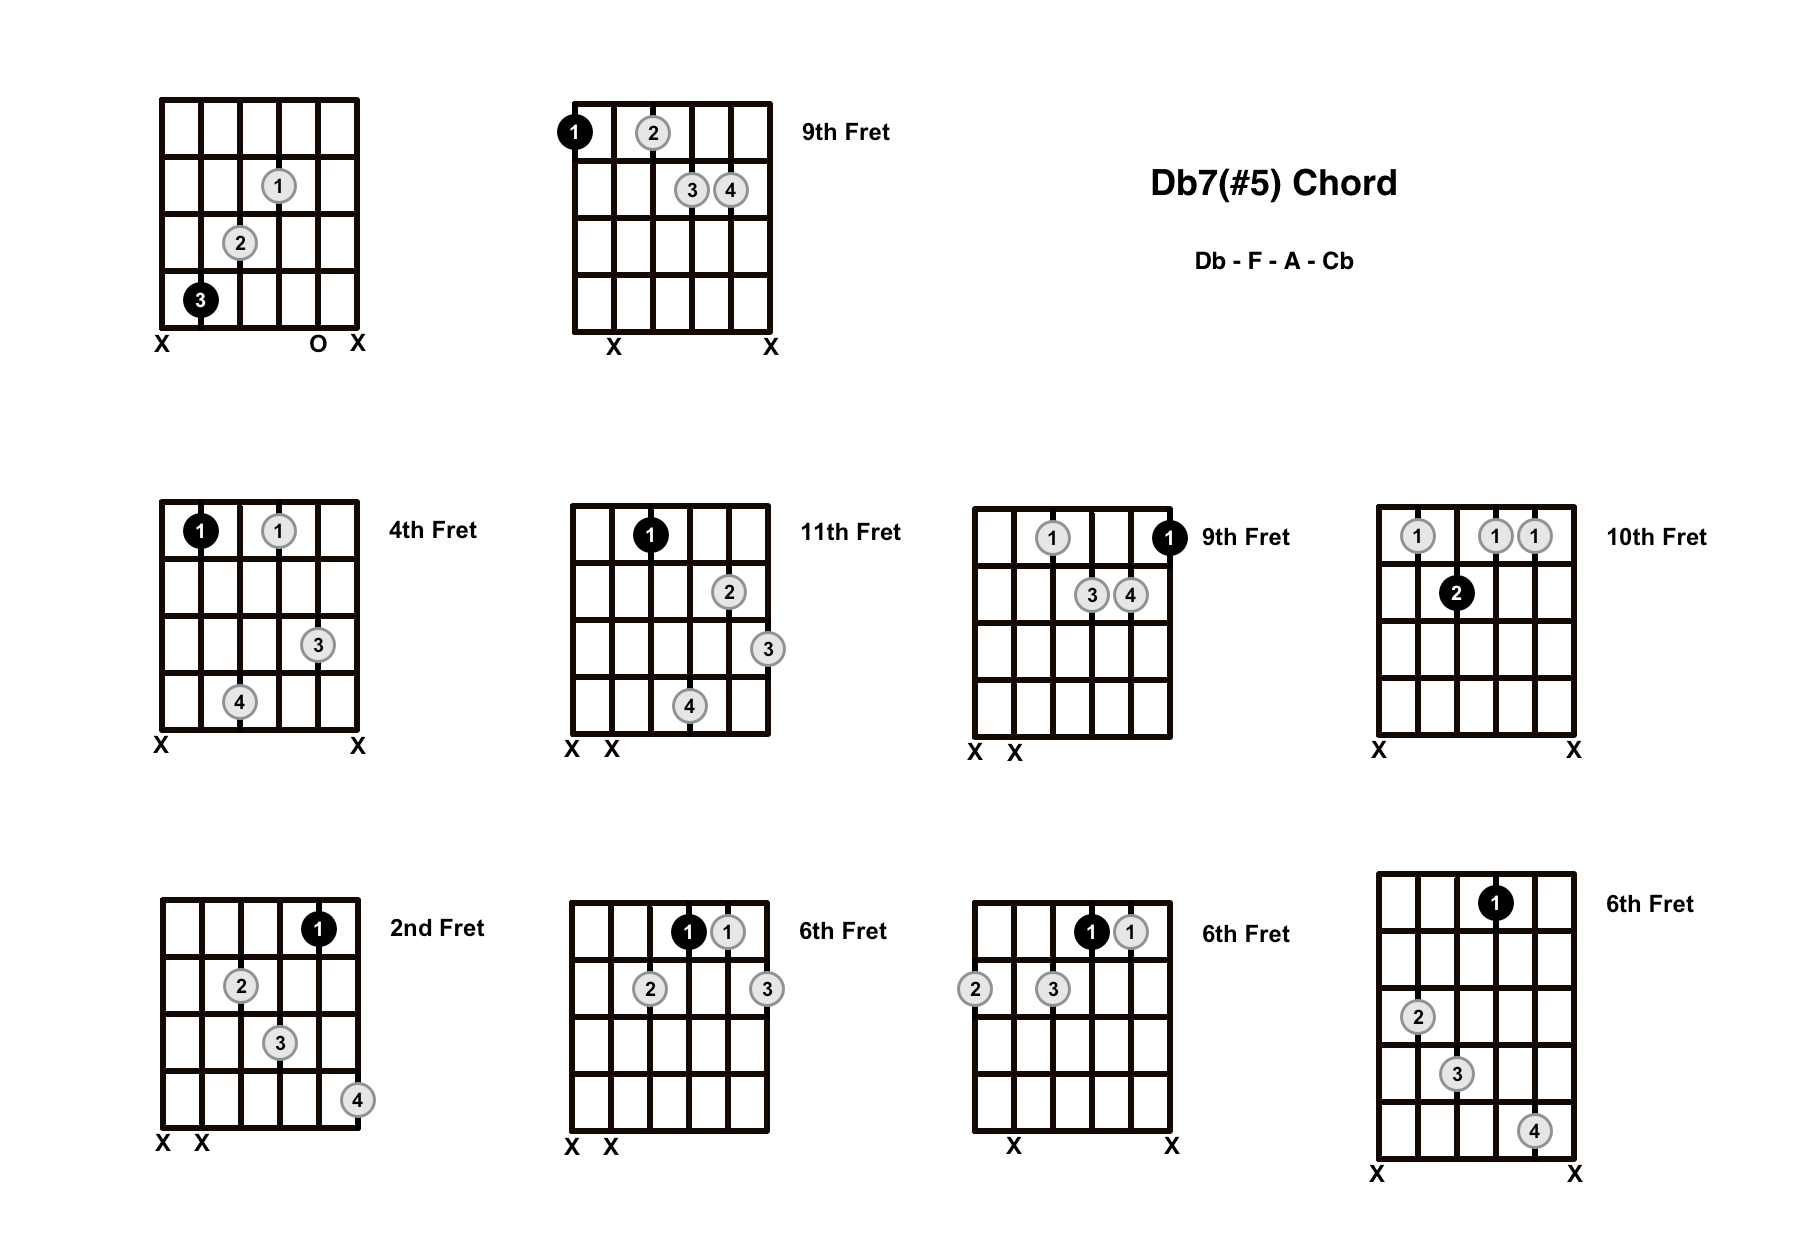 D Flat Augmented 7 Chord On The Guitar (Db7#5, Db+7) – Diagrams, Finger Positions and Theory